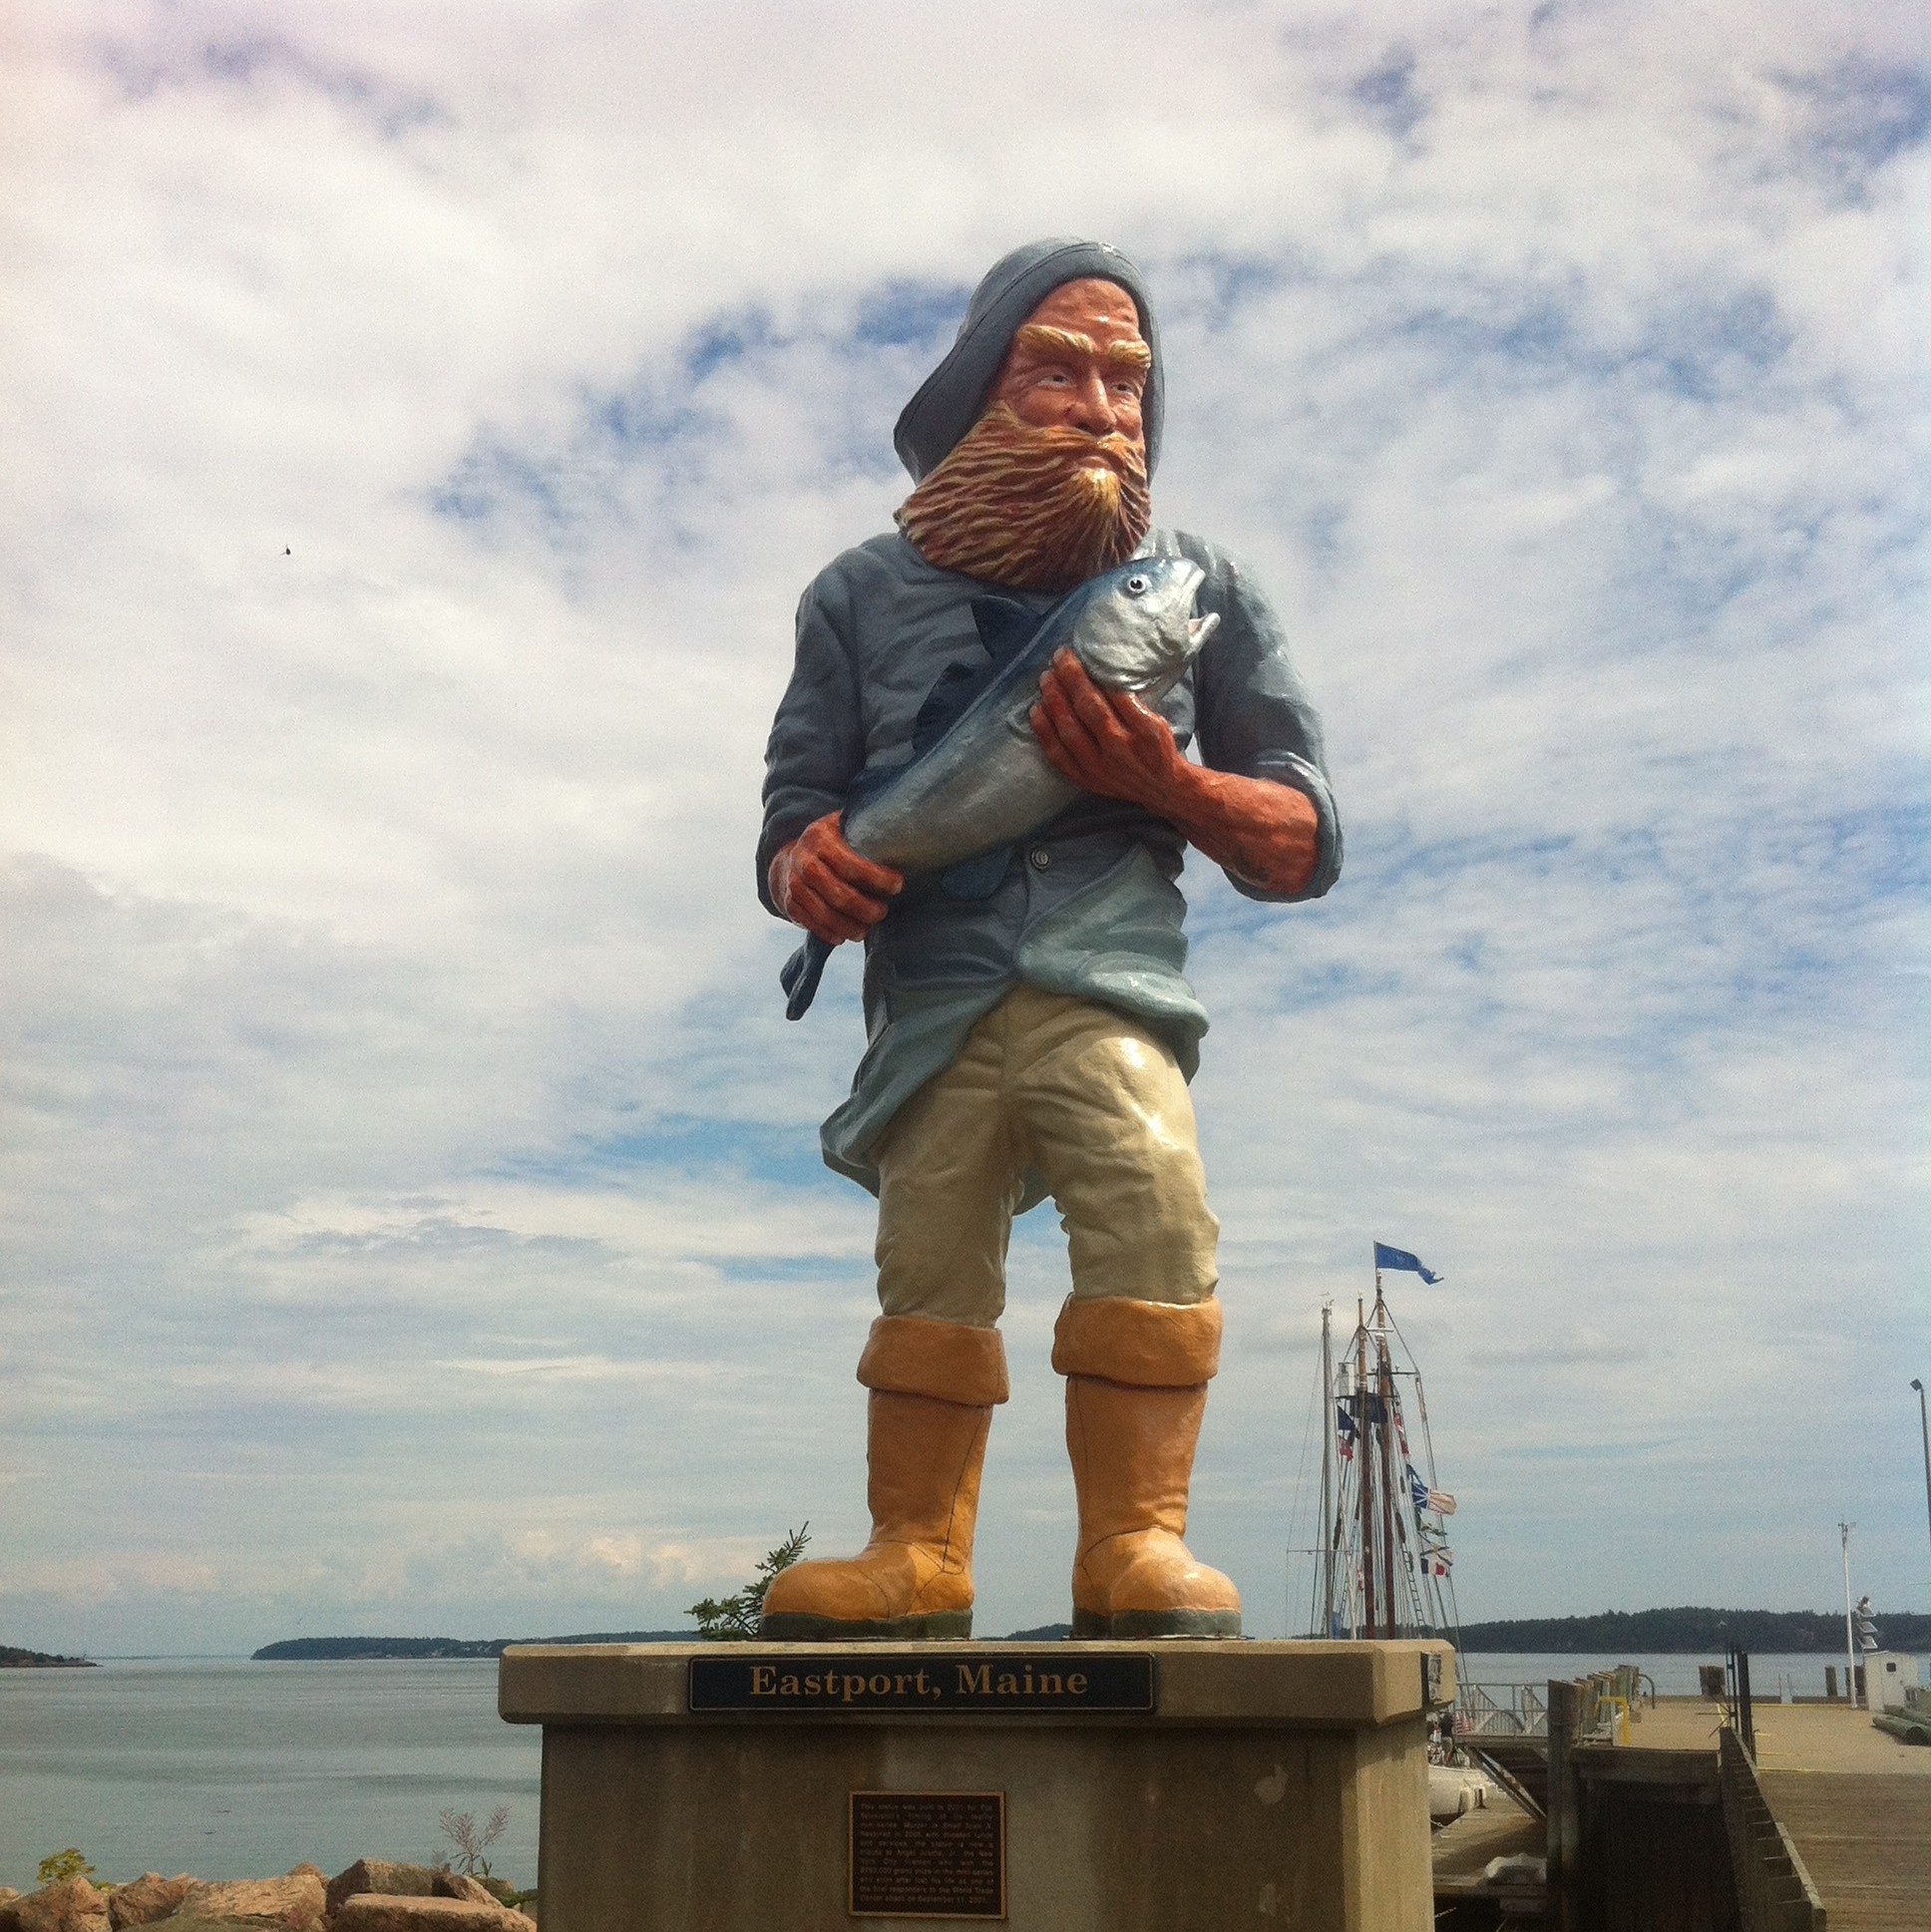 Fisherman Statue eastport maine